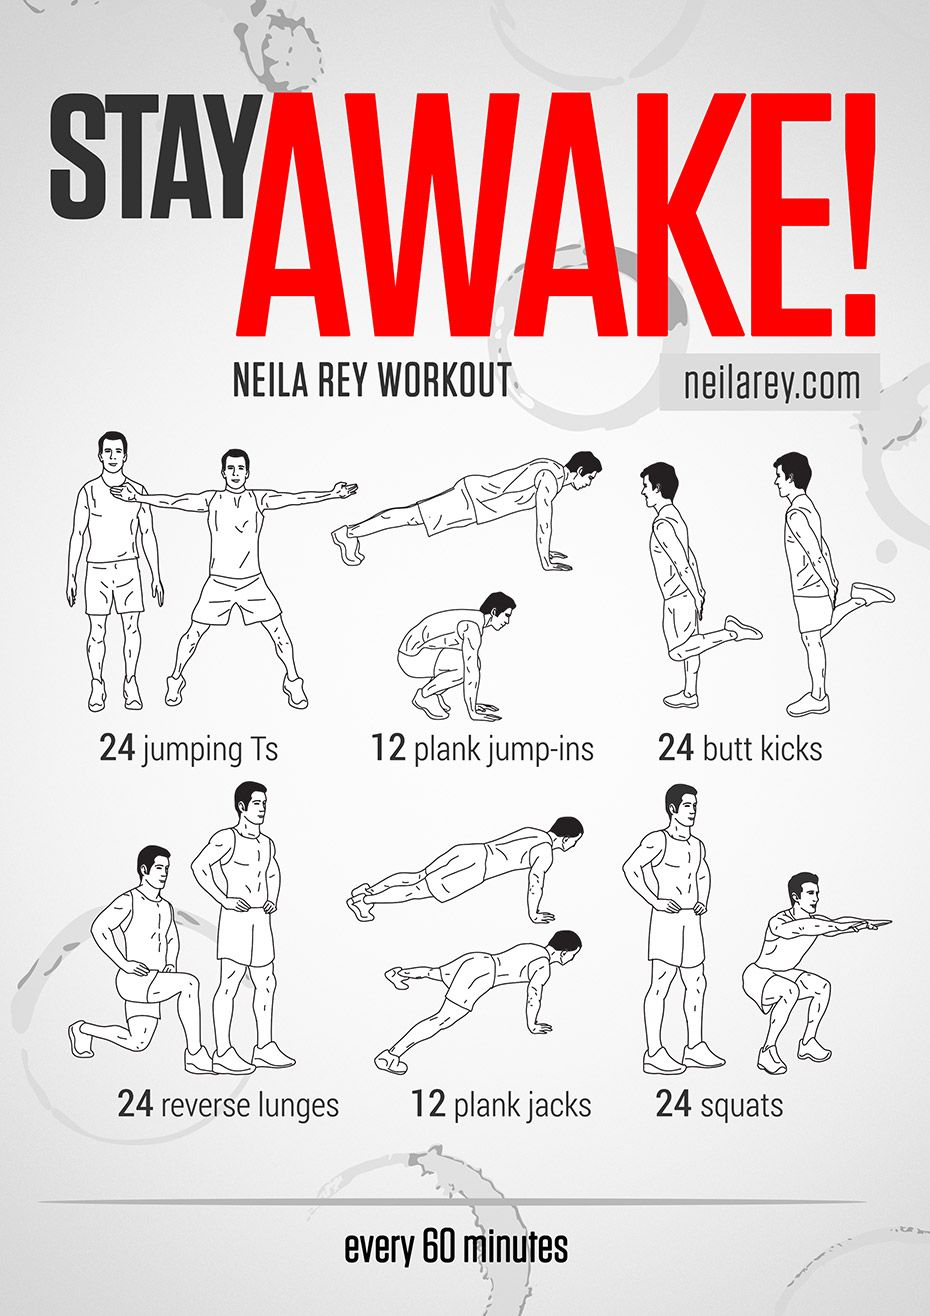 Exceptional Stay Awake Workout / If You Need To Work Late And Stay Focused Exercise Is  A Great Way To Keep Your Body And Mind Online! (for Late Night Study  Sessions) :) Regarding How To Keep Yourself Awake